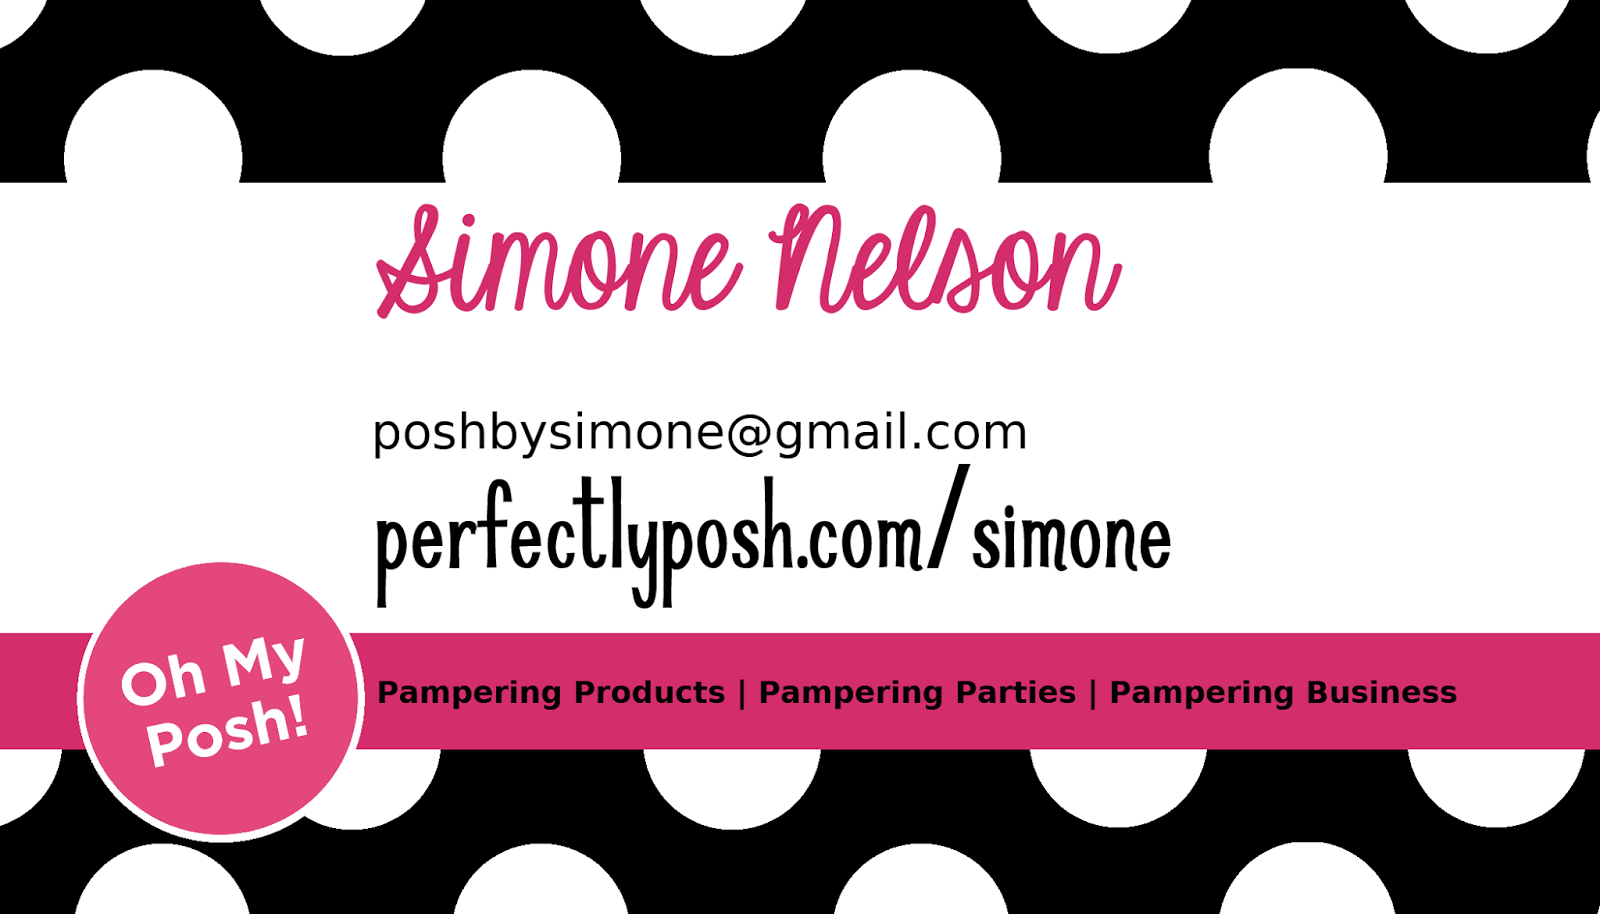 Super Posh by Simone: Making My Own Business Tools AR47